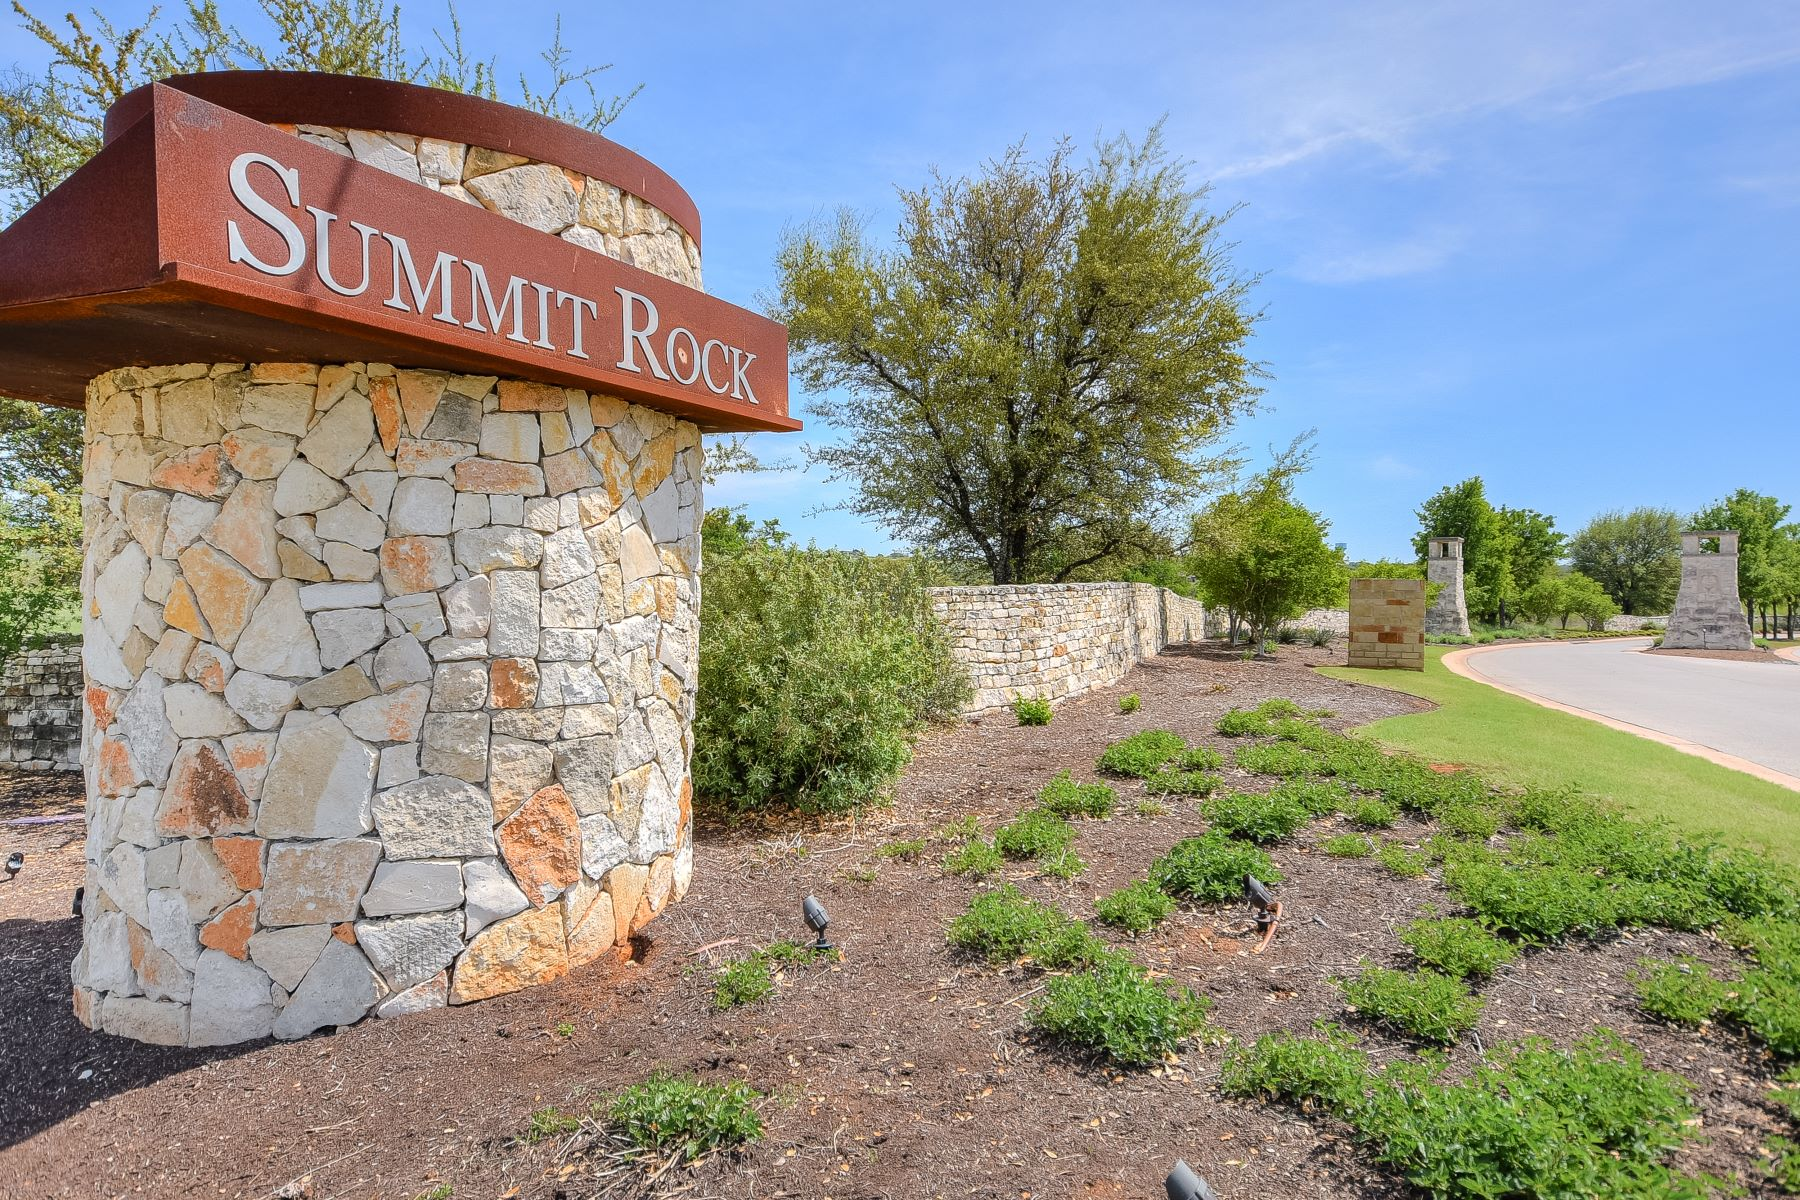 Land for Sale at Undoubtedly the Best Views in Summit Rock 22 Nightshade Horseshoe Bay, Texas 78657 United States